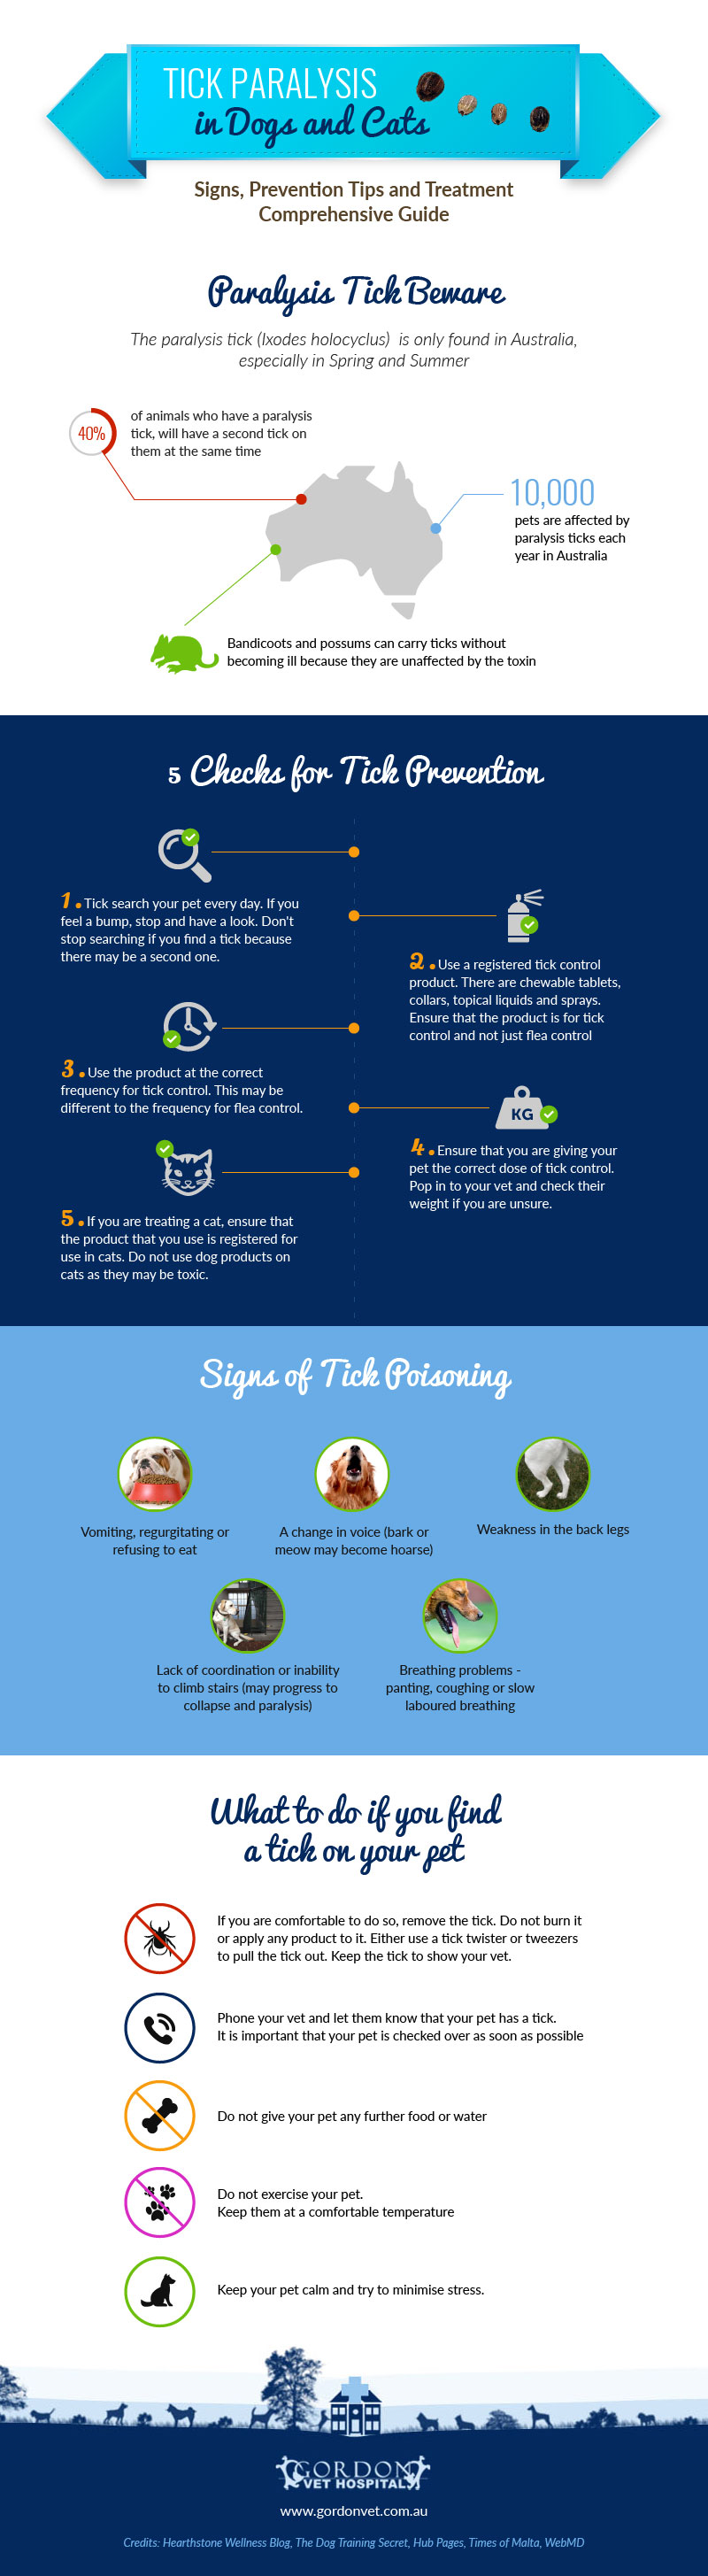 Tick Paralysis in Dogs and Cats Infographic